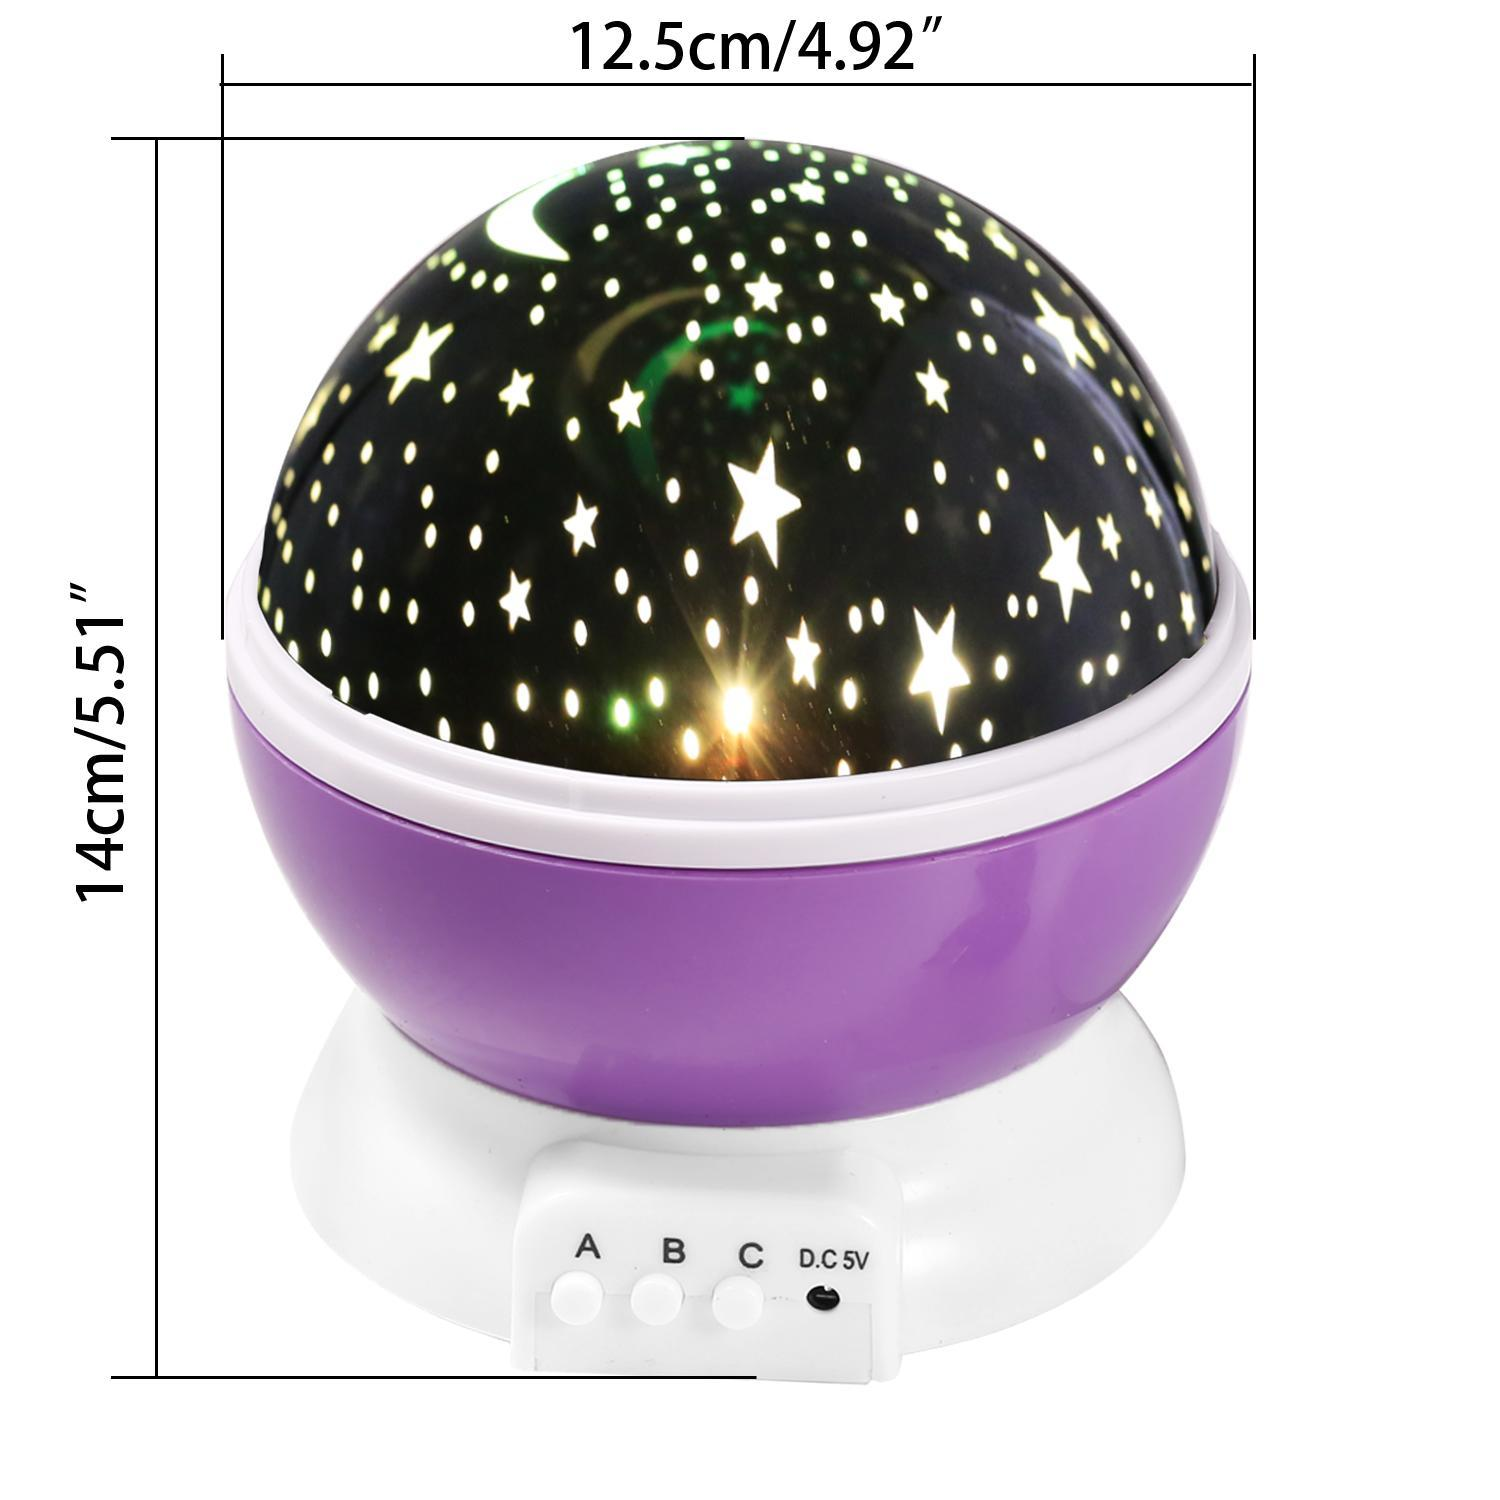 LED Star Projector Night Light Amazing Lamp Master for Kids Bedroom Home Decoration(with USB Cable), Purple KMIMT